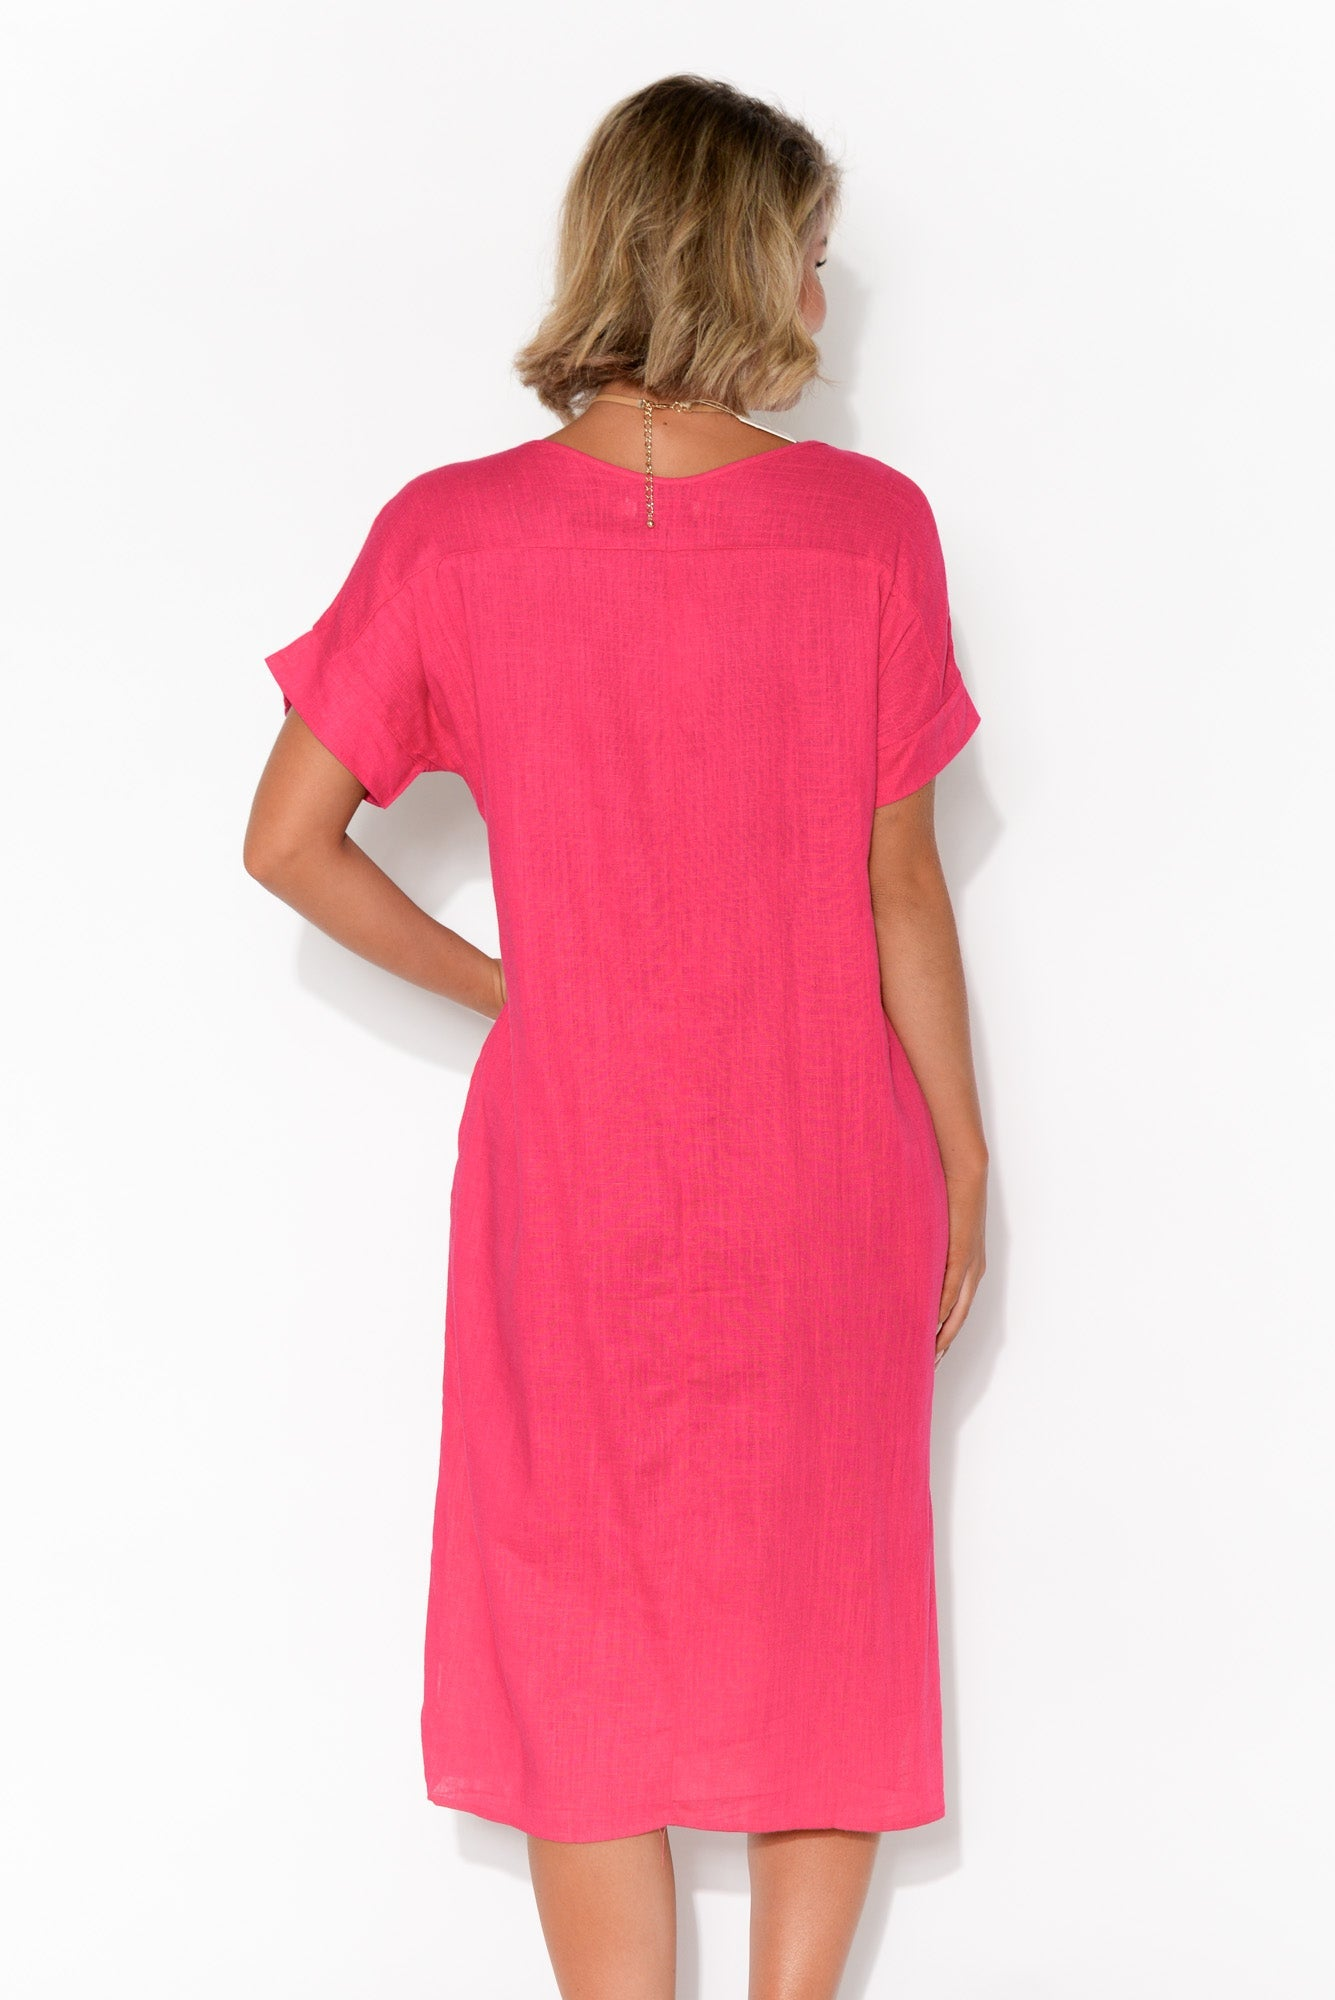 Hannah Pink Linen Cotton Dress